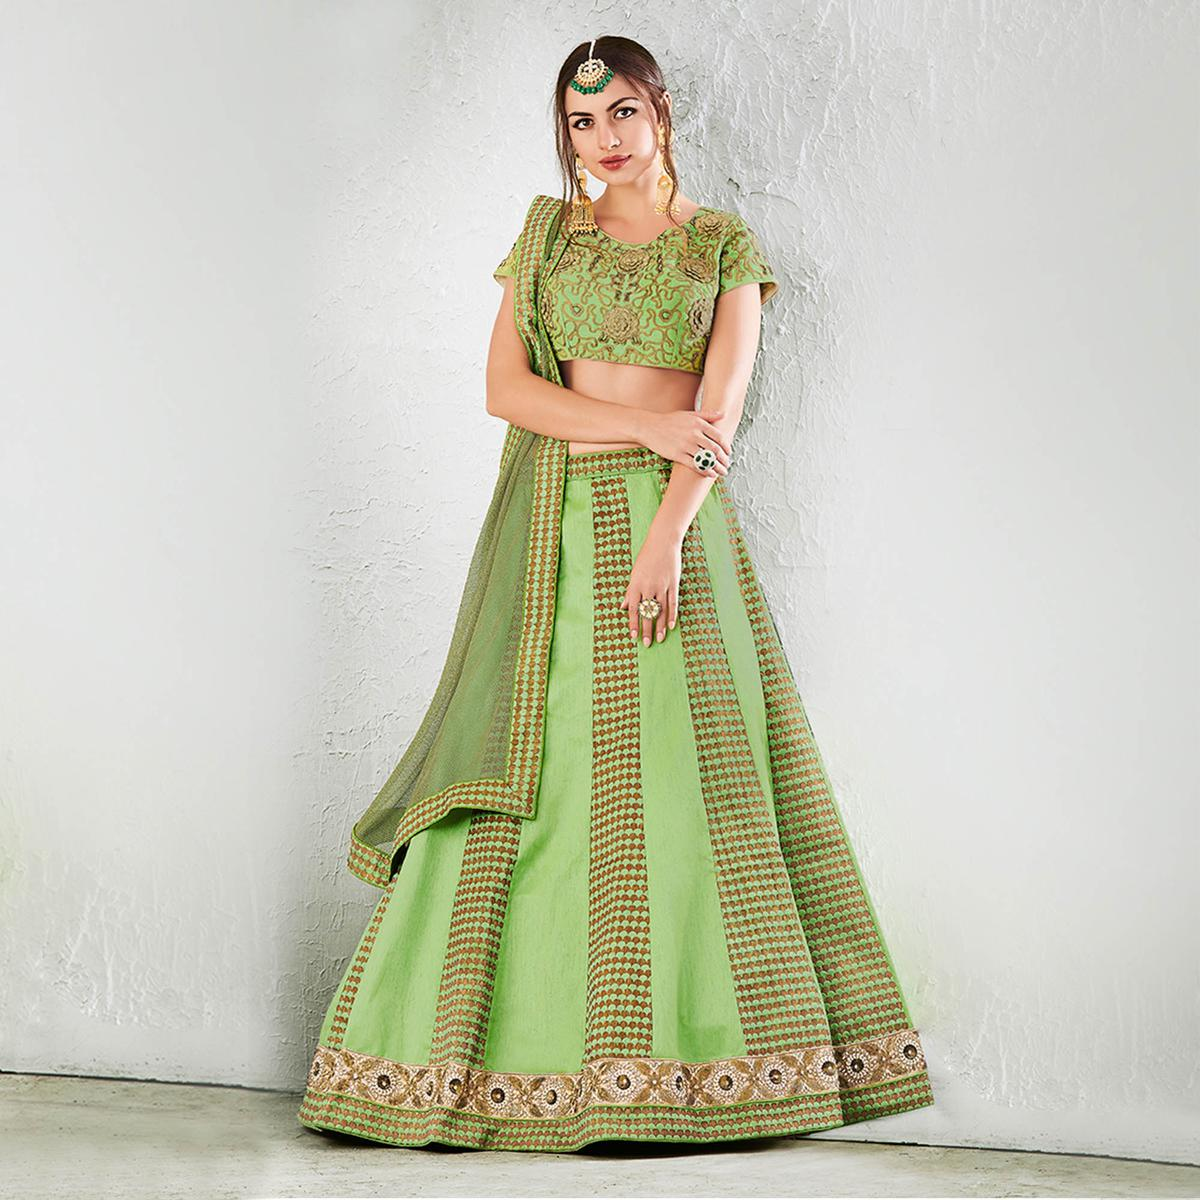 Green Colored Designer Embroidered Jacquard Silk Lehenga Choli